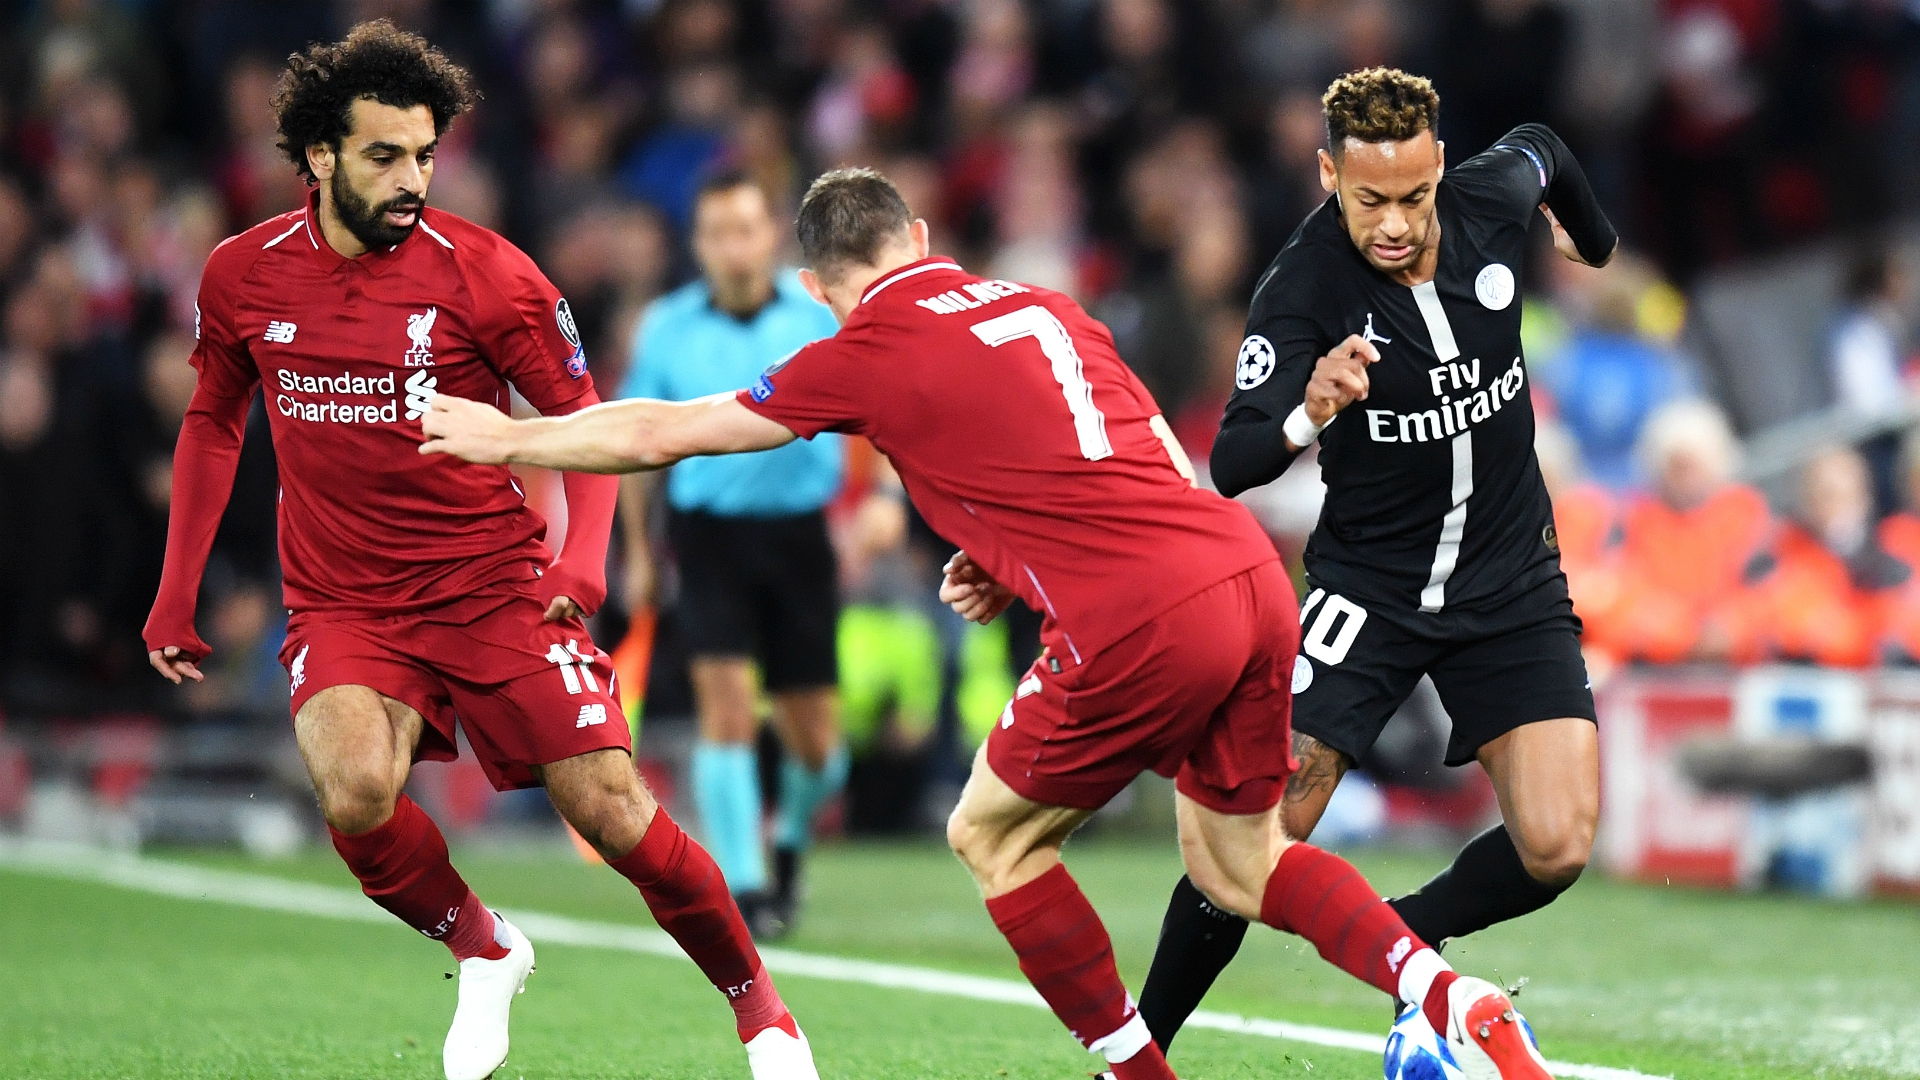 psg host liverpool in pivotal champions league clash